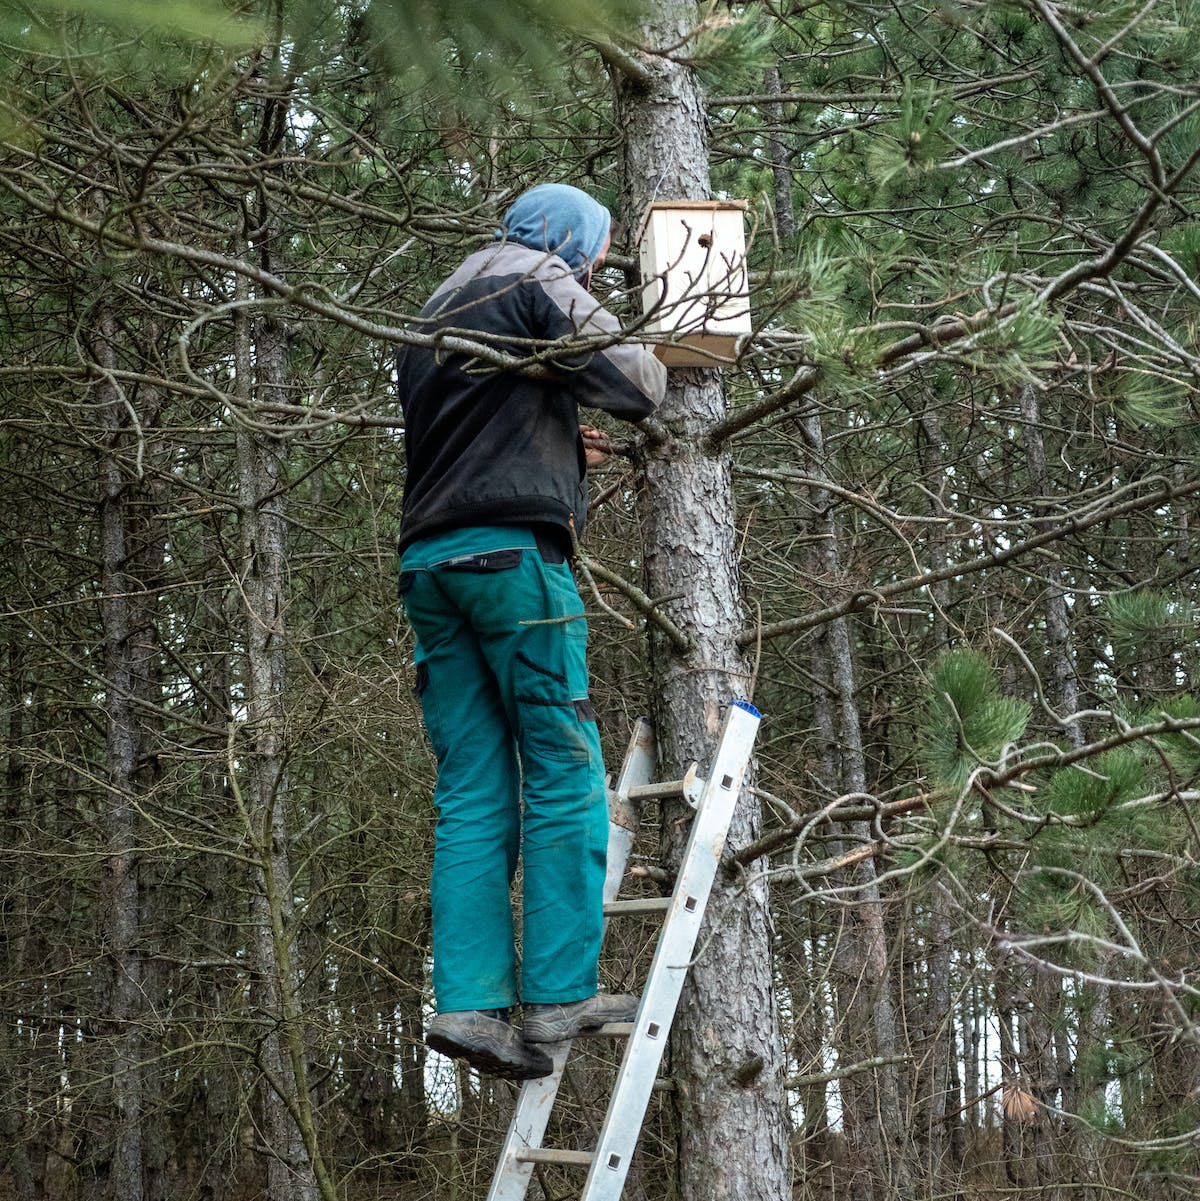 A man stands on a ladder against a pine tree installing a brown nest box